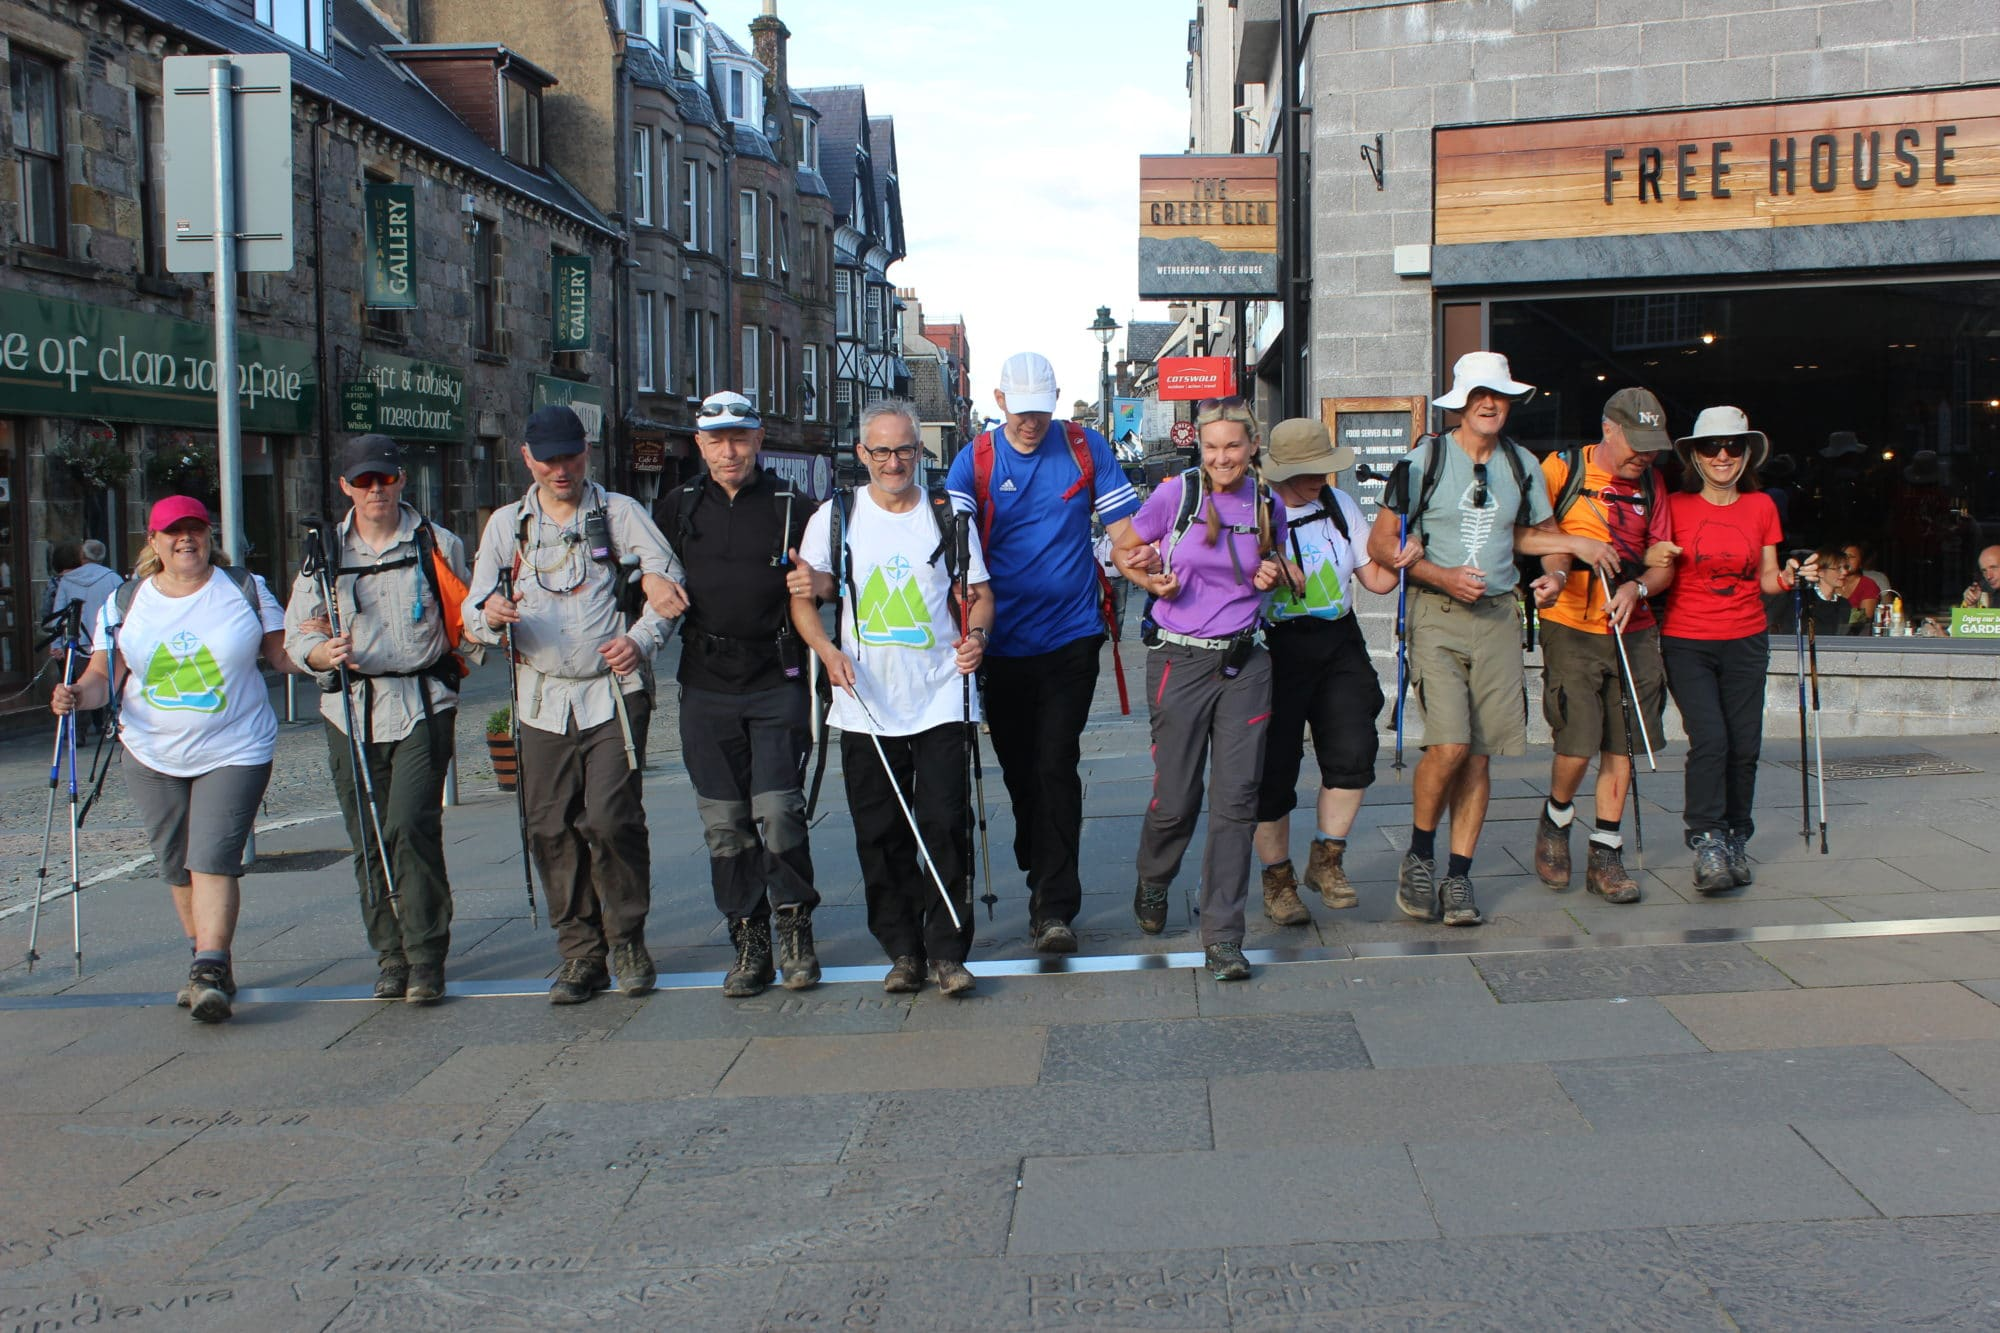 Group of people in walking gear